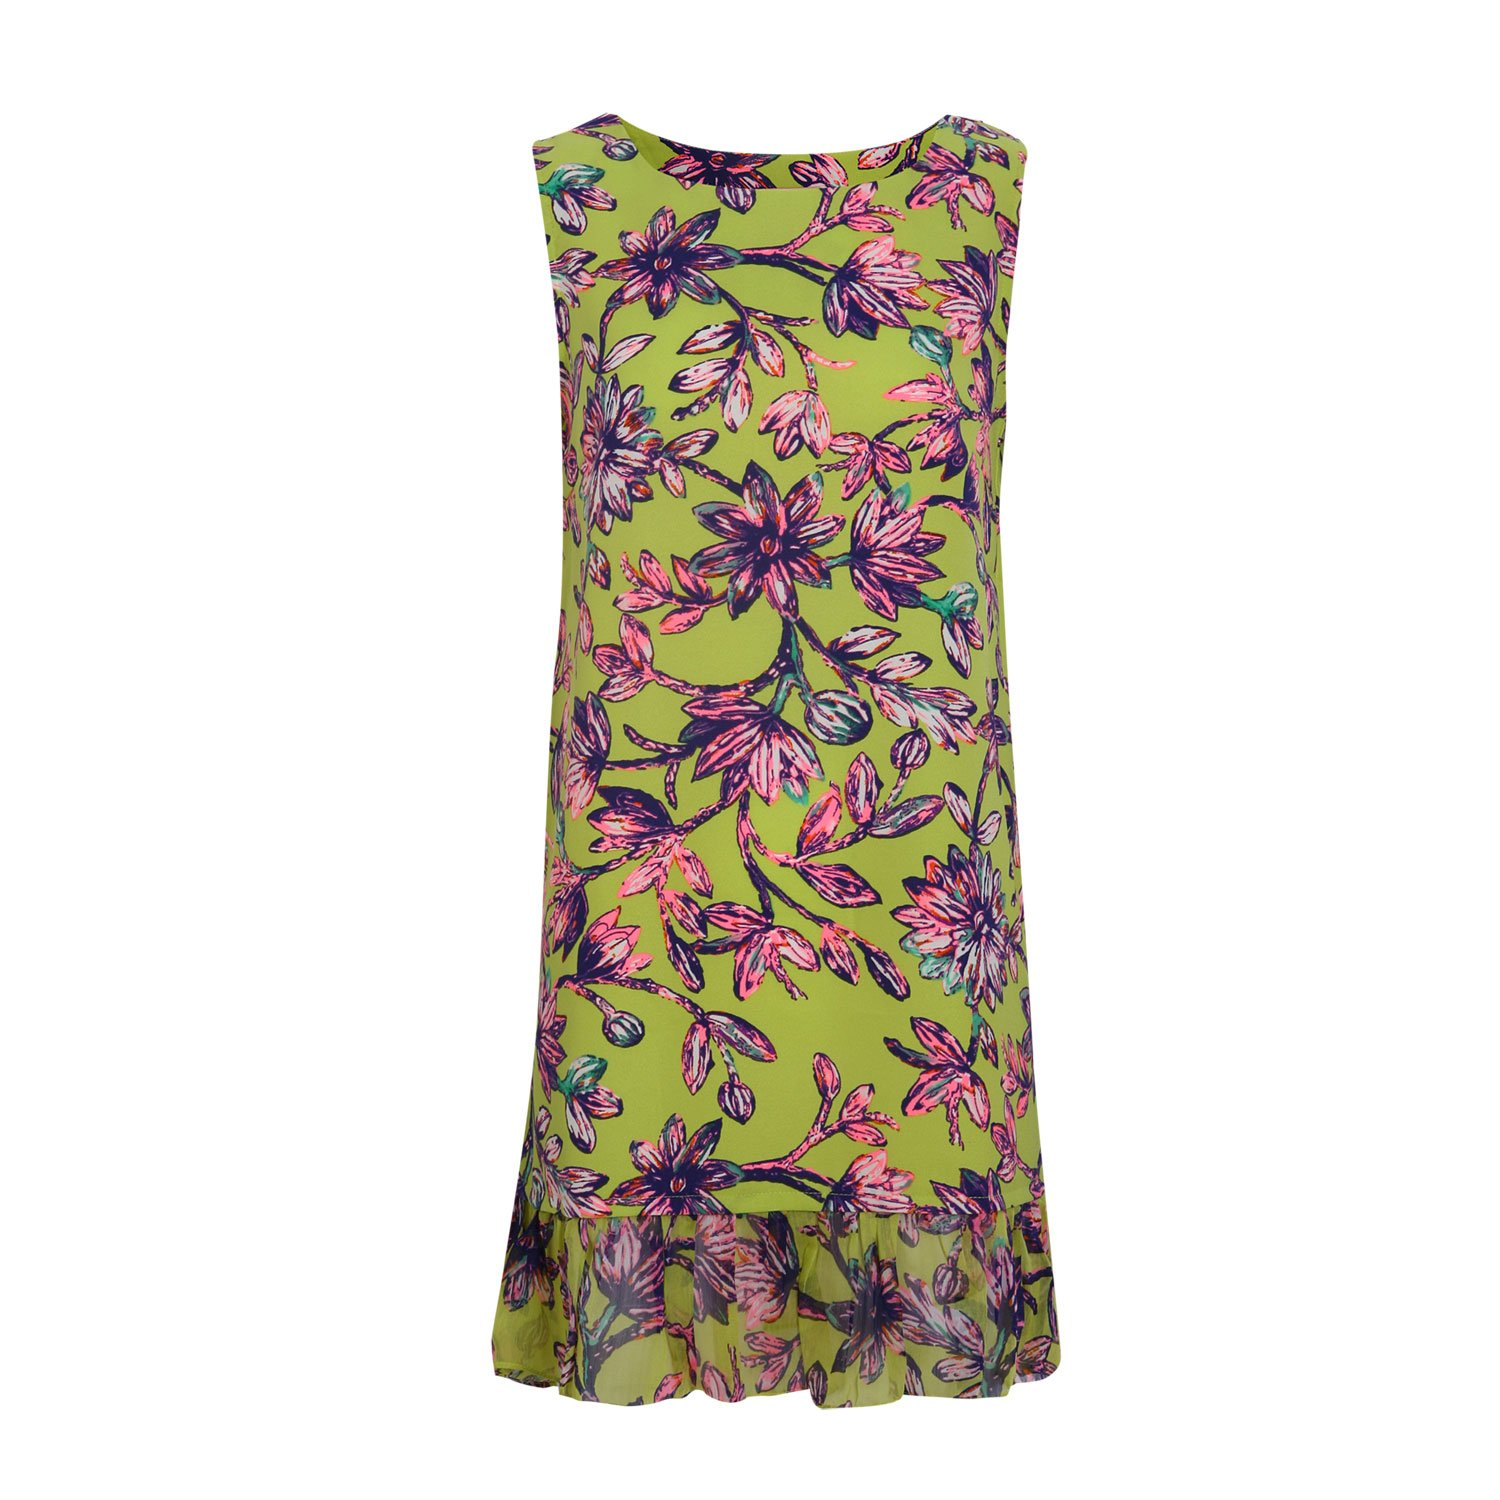 Orion Women's Alda Floral Dress With Ruffles 100% Polyester